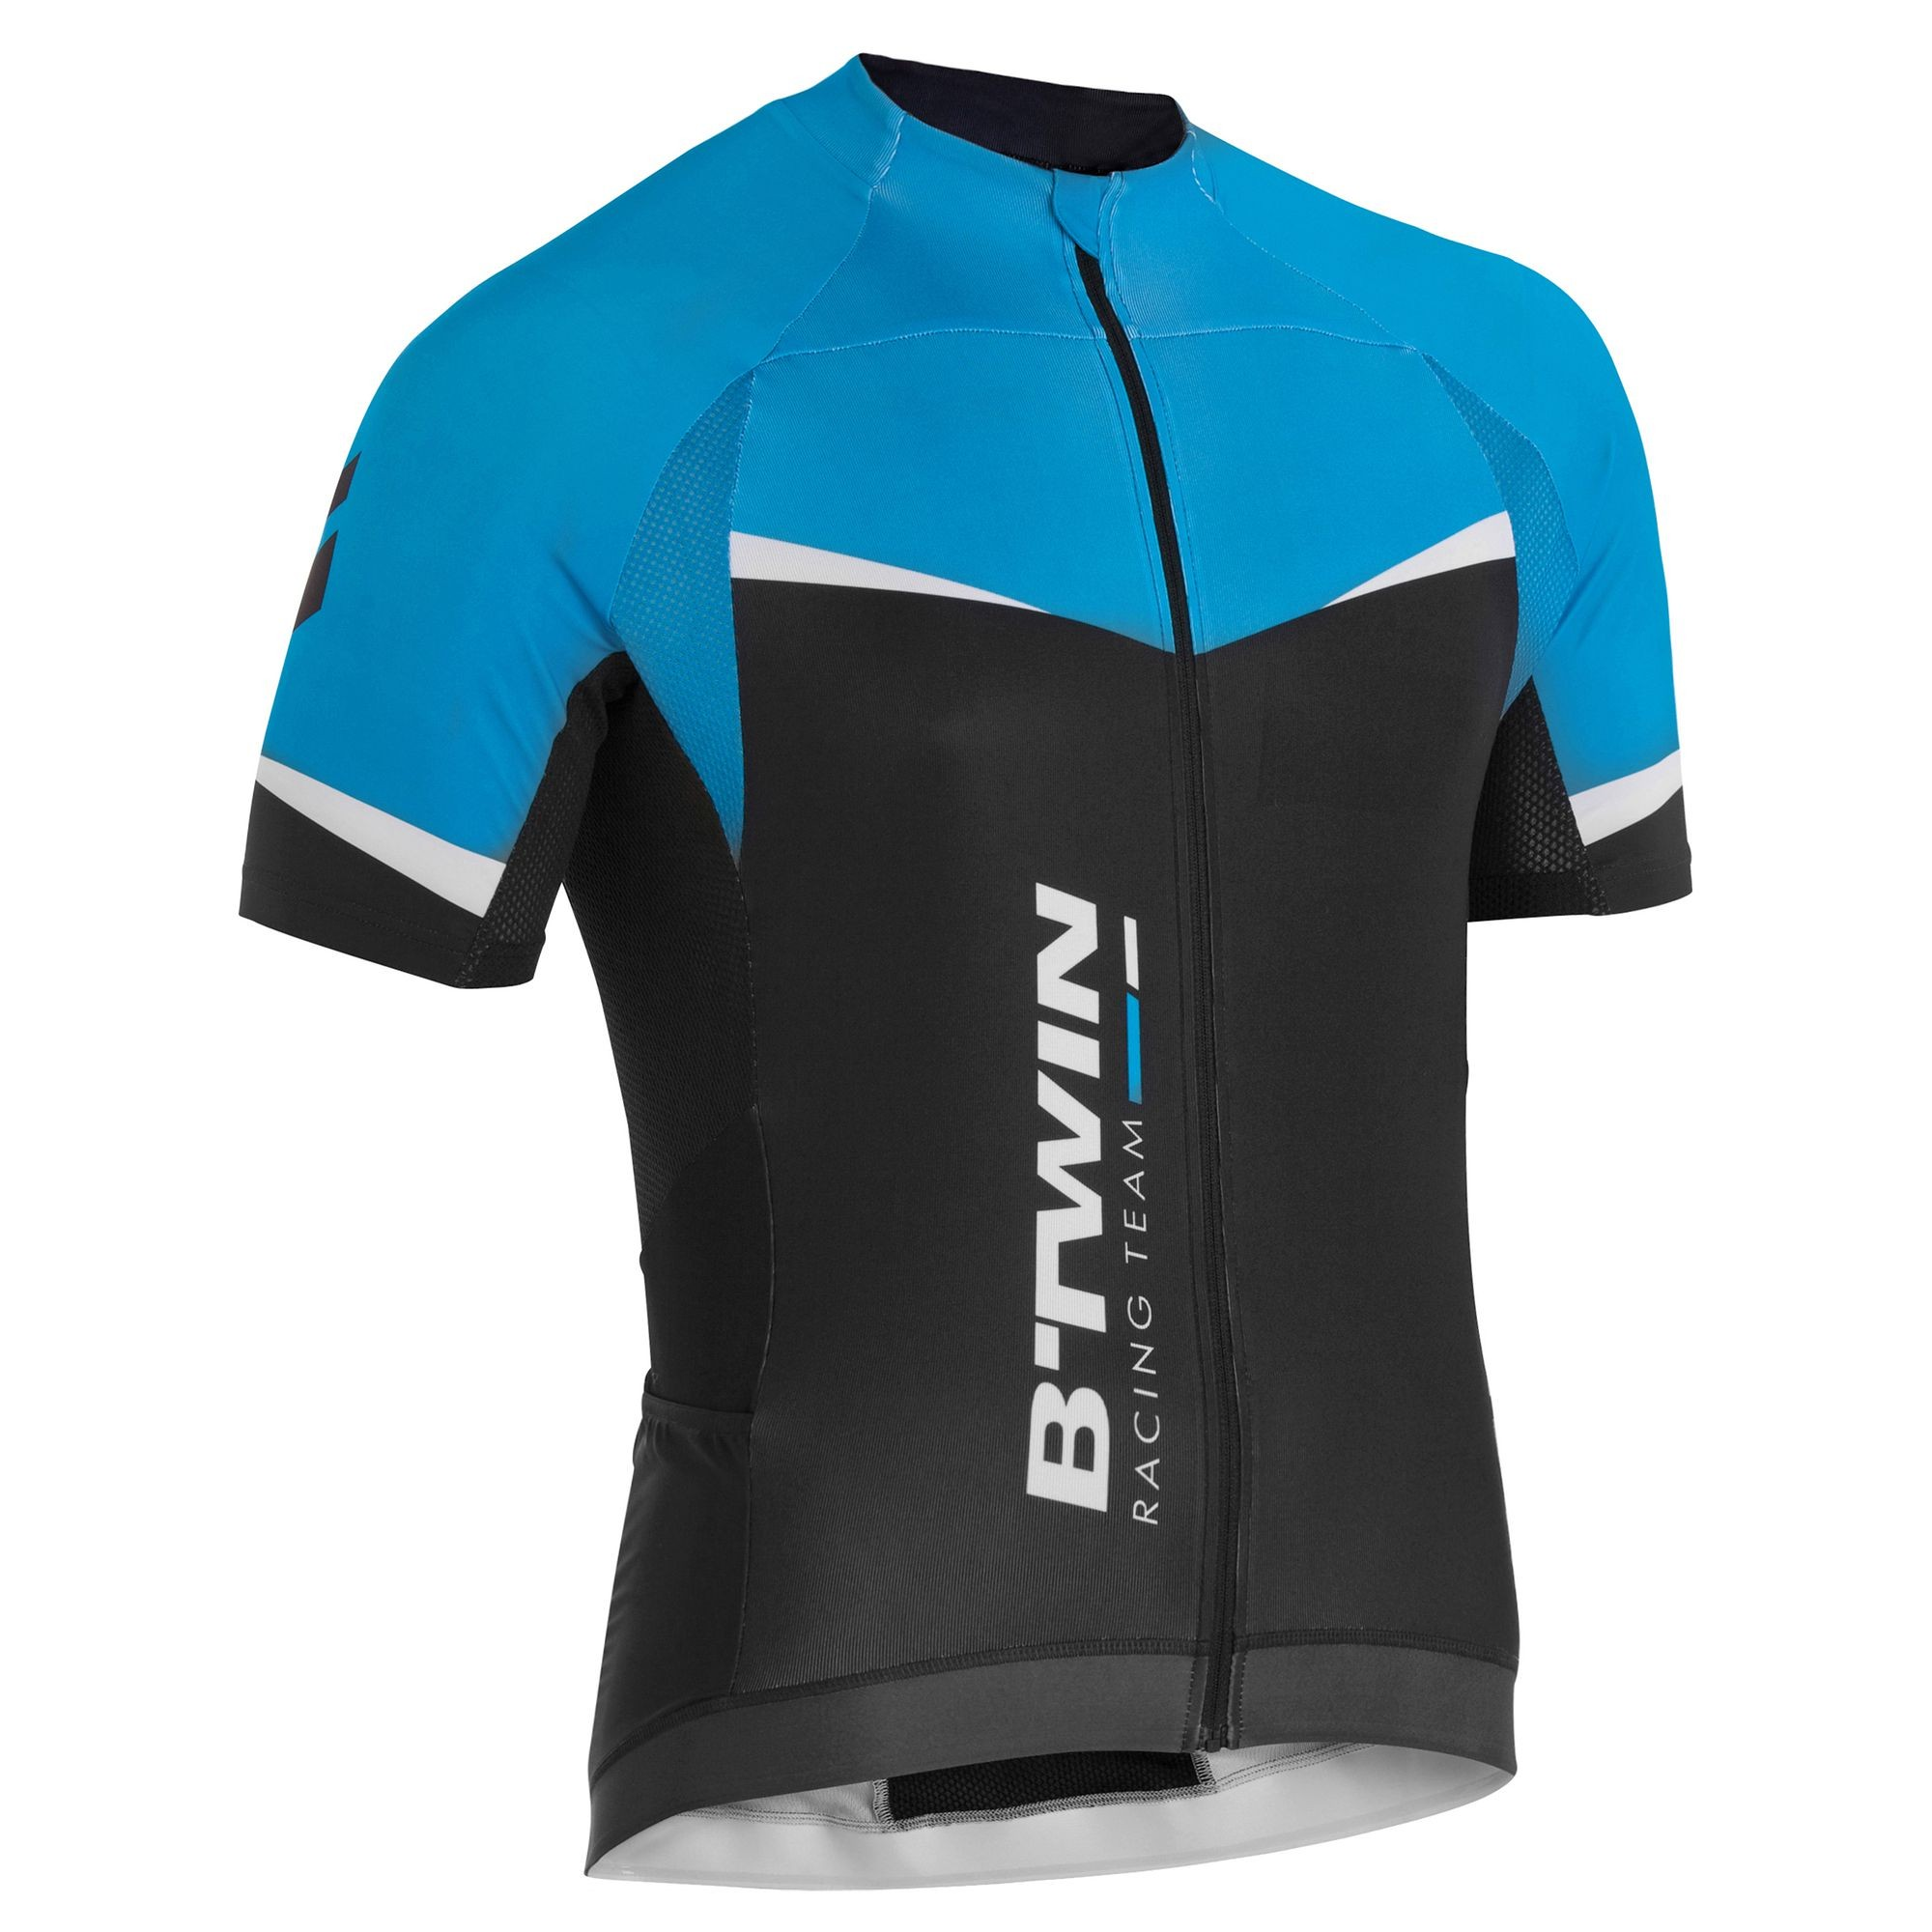 Cycling jerseys — everything you need to know